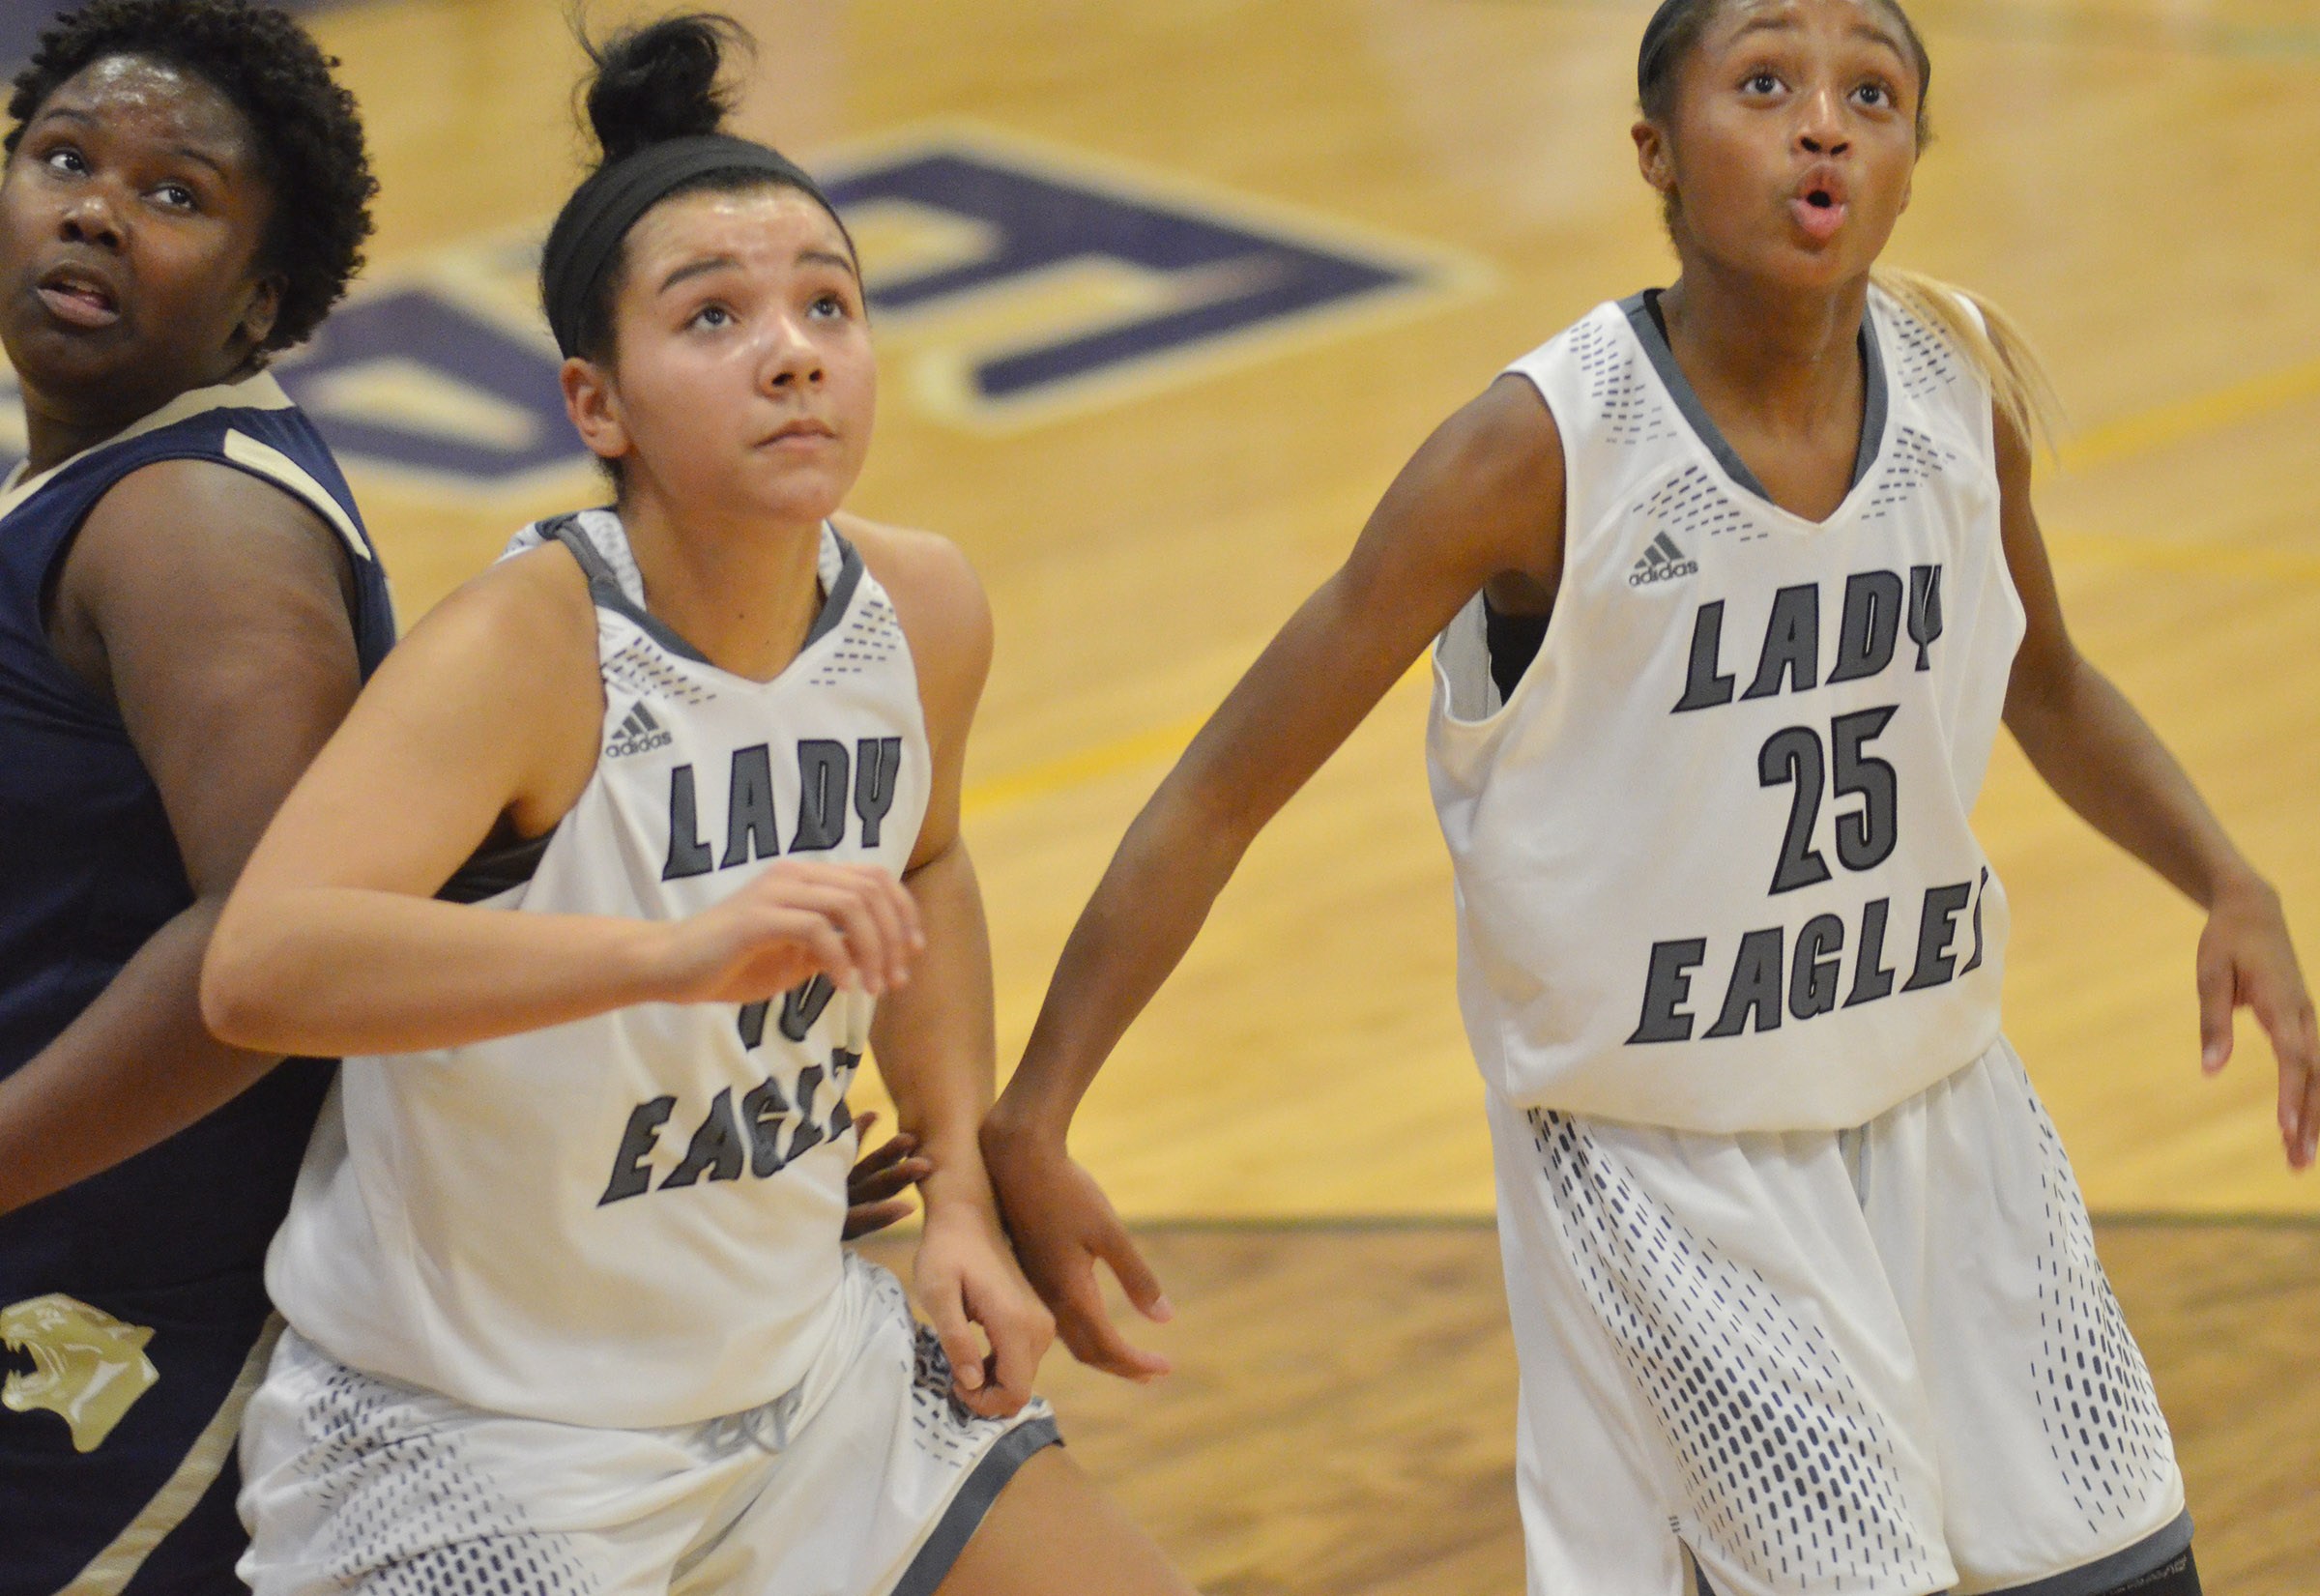 CHS junior Kalisha Murphy, at left, and Campbellsville Middle School eighth-grader Bri Gowdy watch the ball.